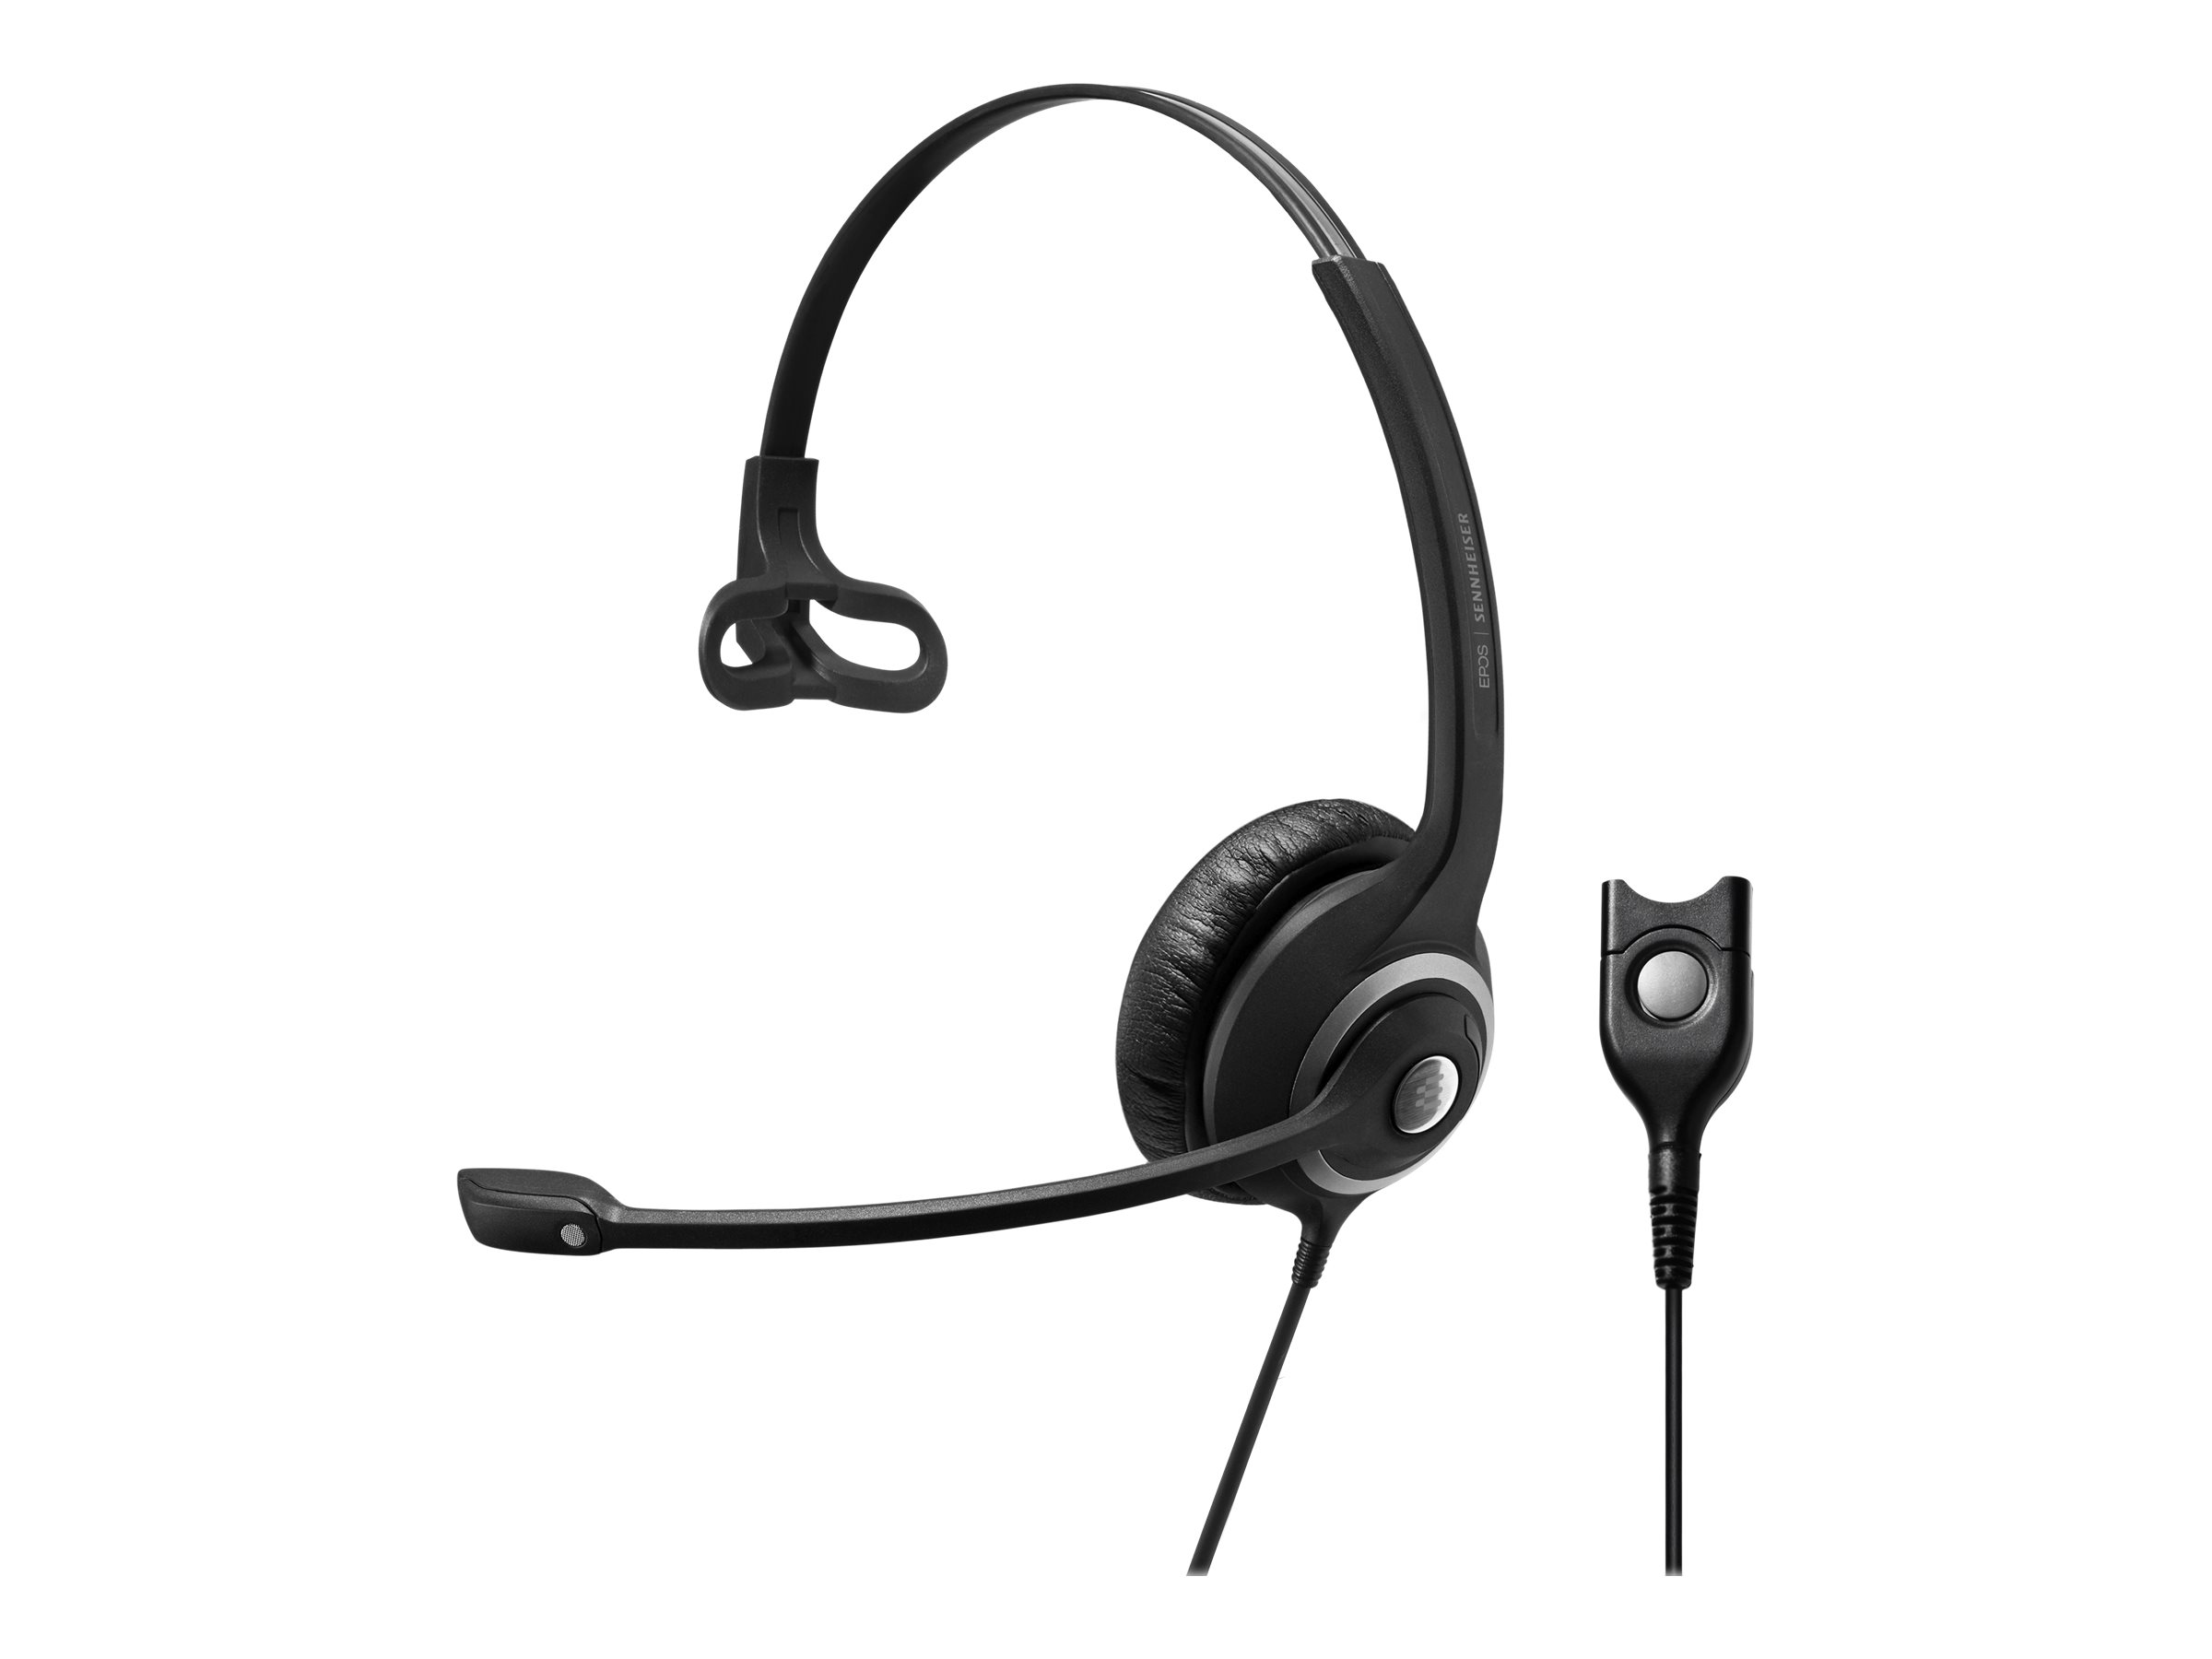 EPOS I SENNHEISER IMPACT SC 232 - 200 Series - Headset - On-Ear - kabelgebunden - Easy Disconnect